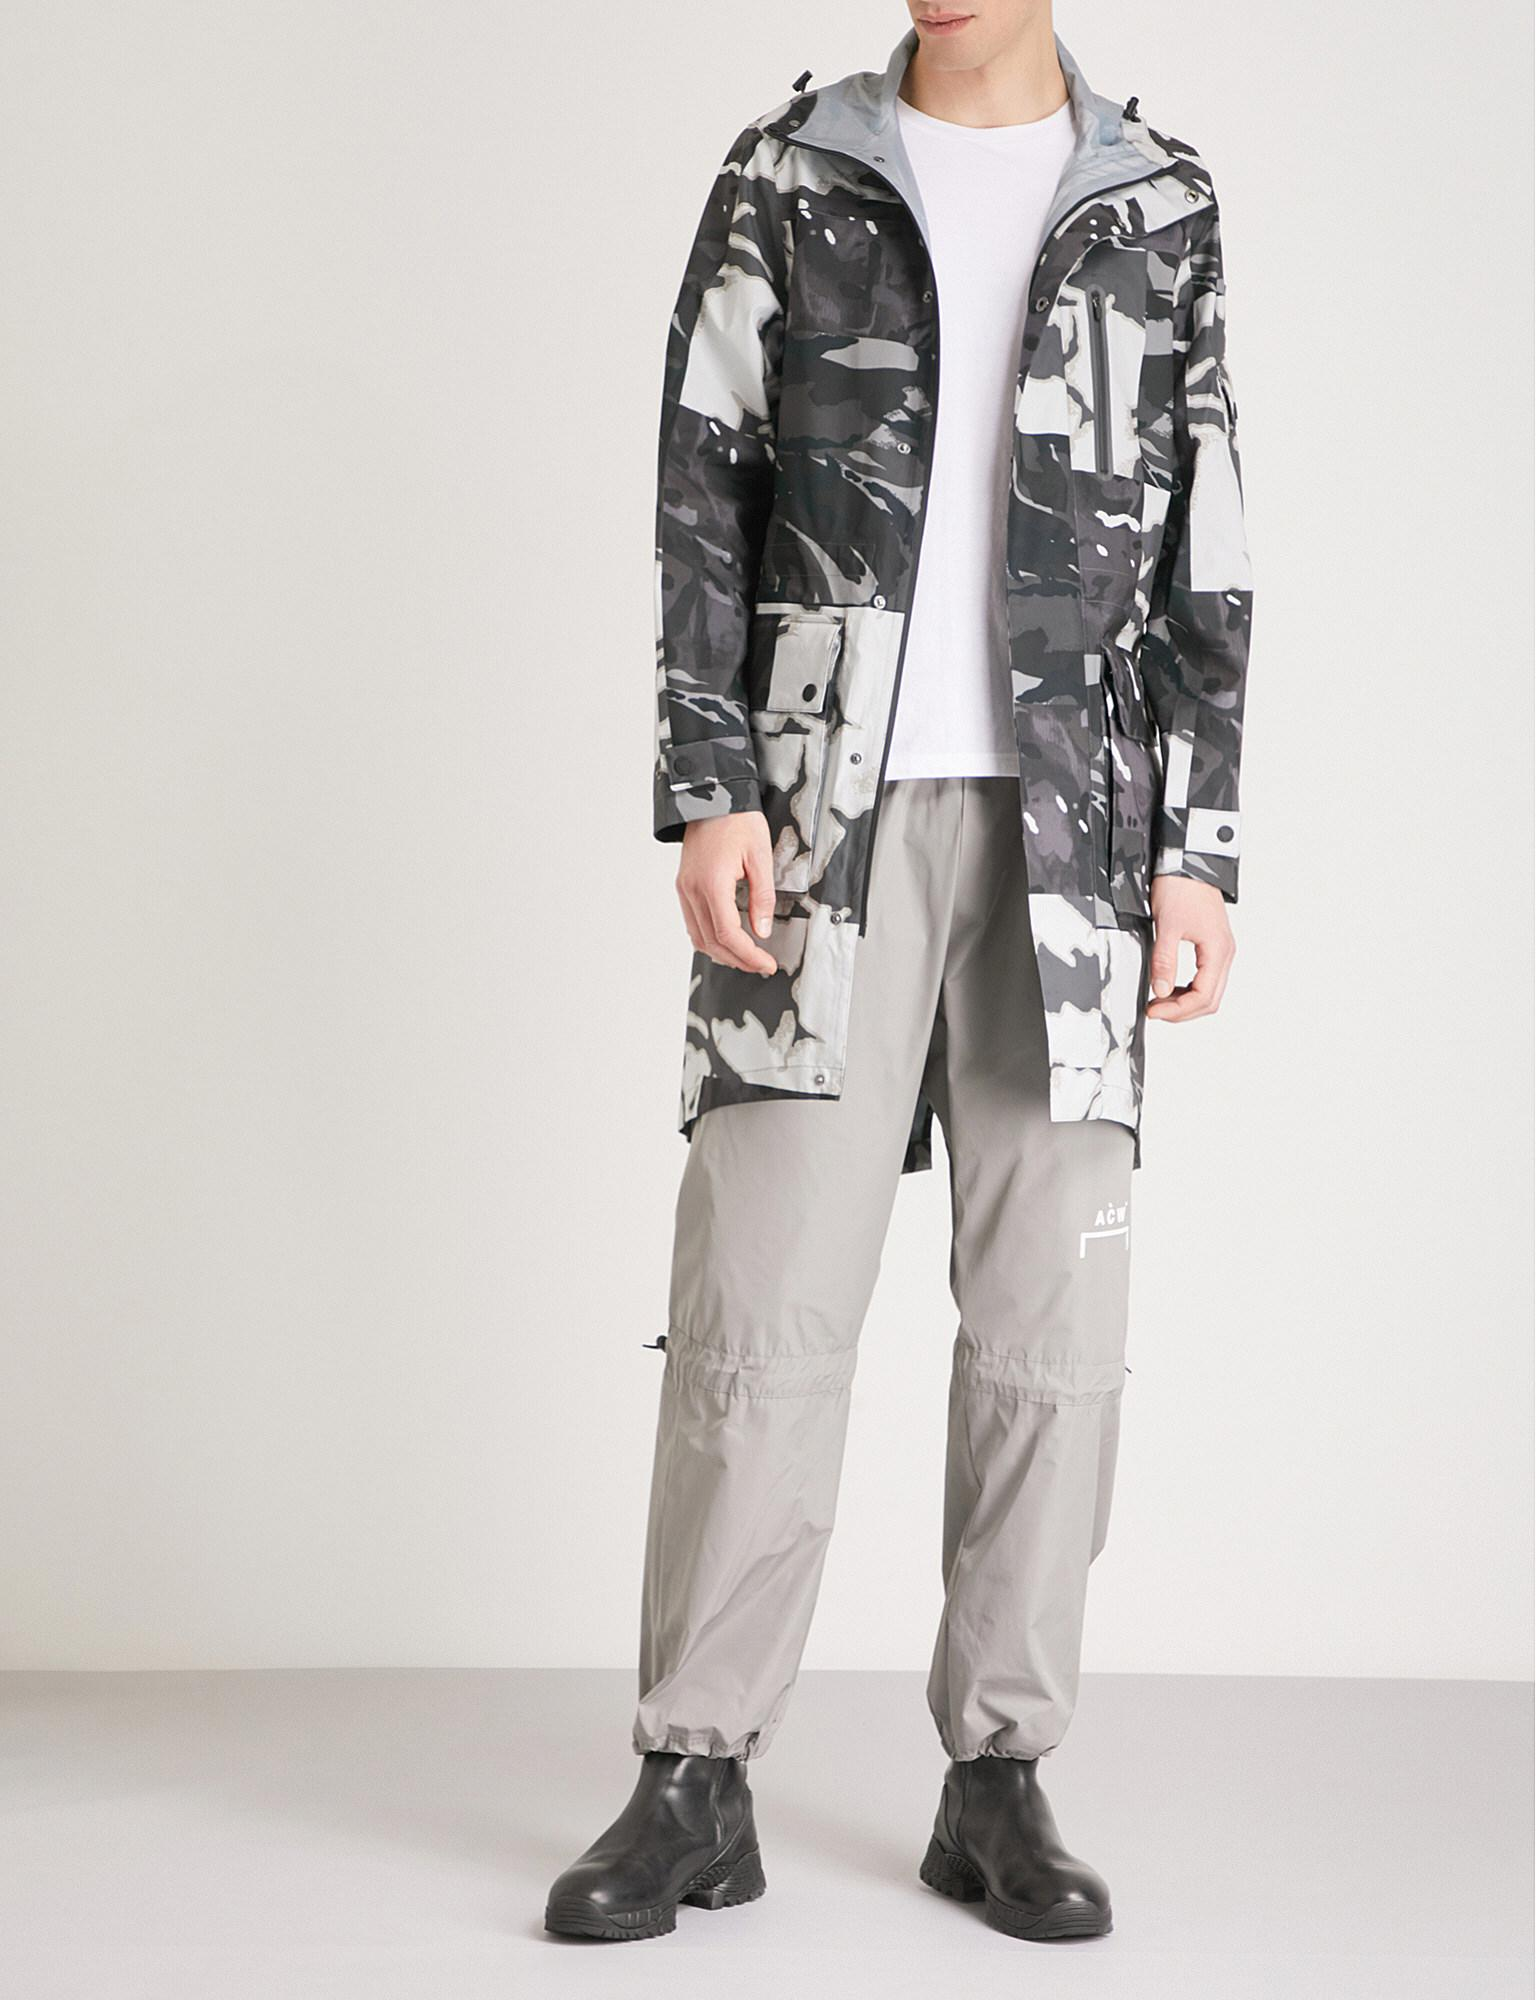 Christopher Raeburn. Men's Gray Abstract Camouflage-print Hooded Shell Parka Coat